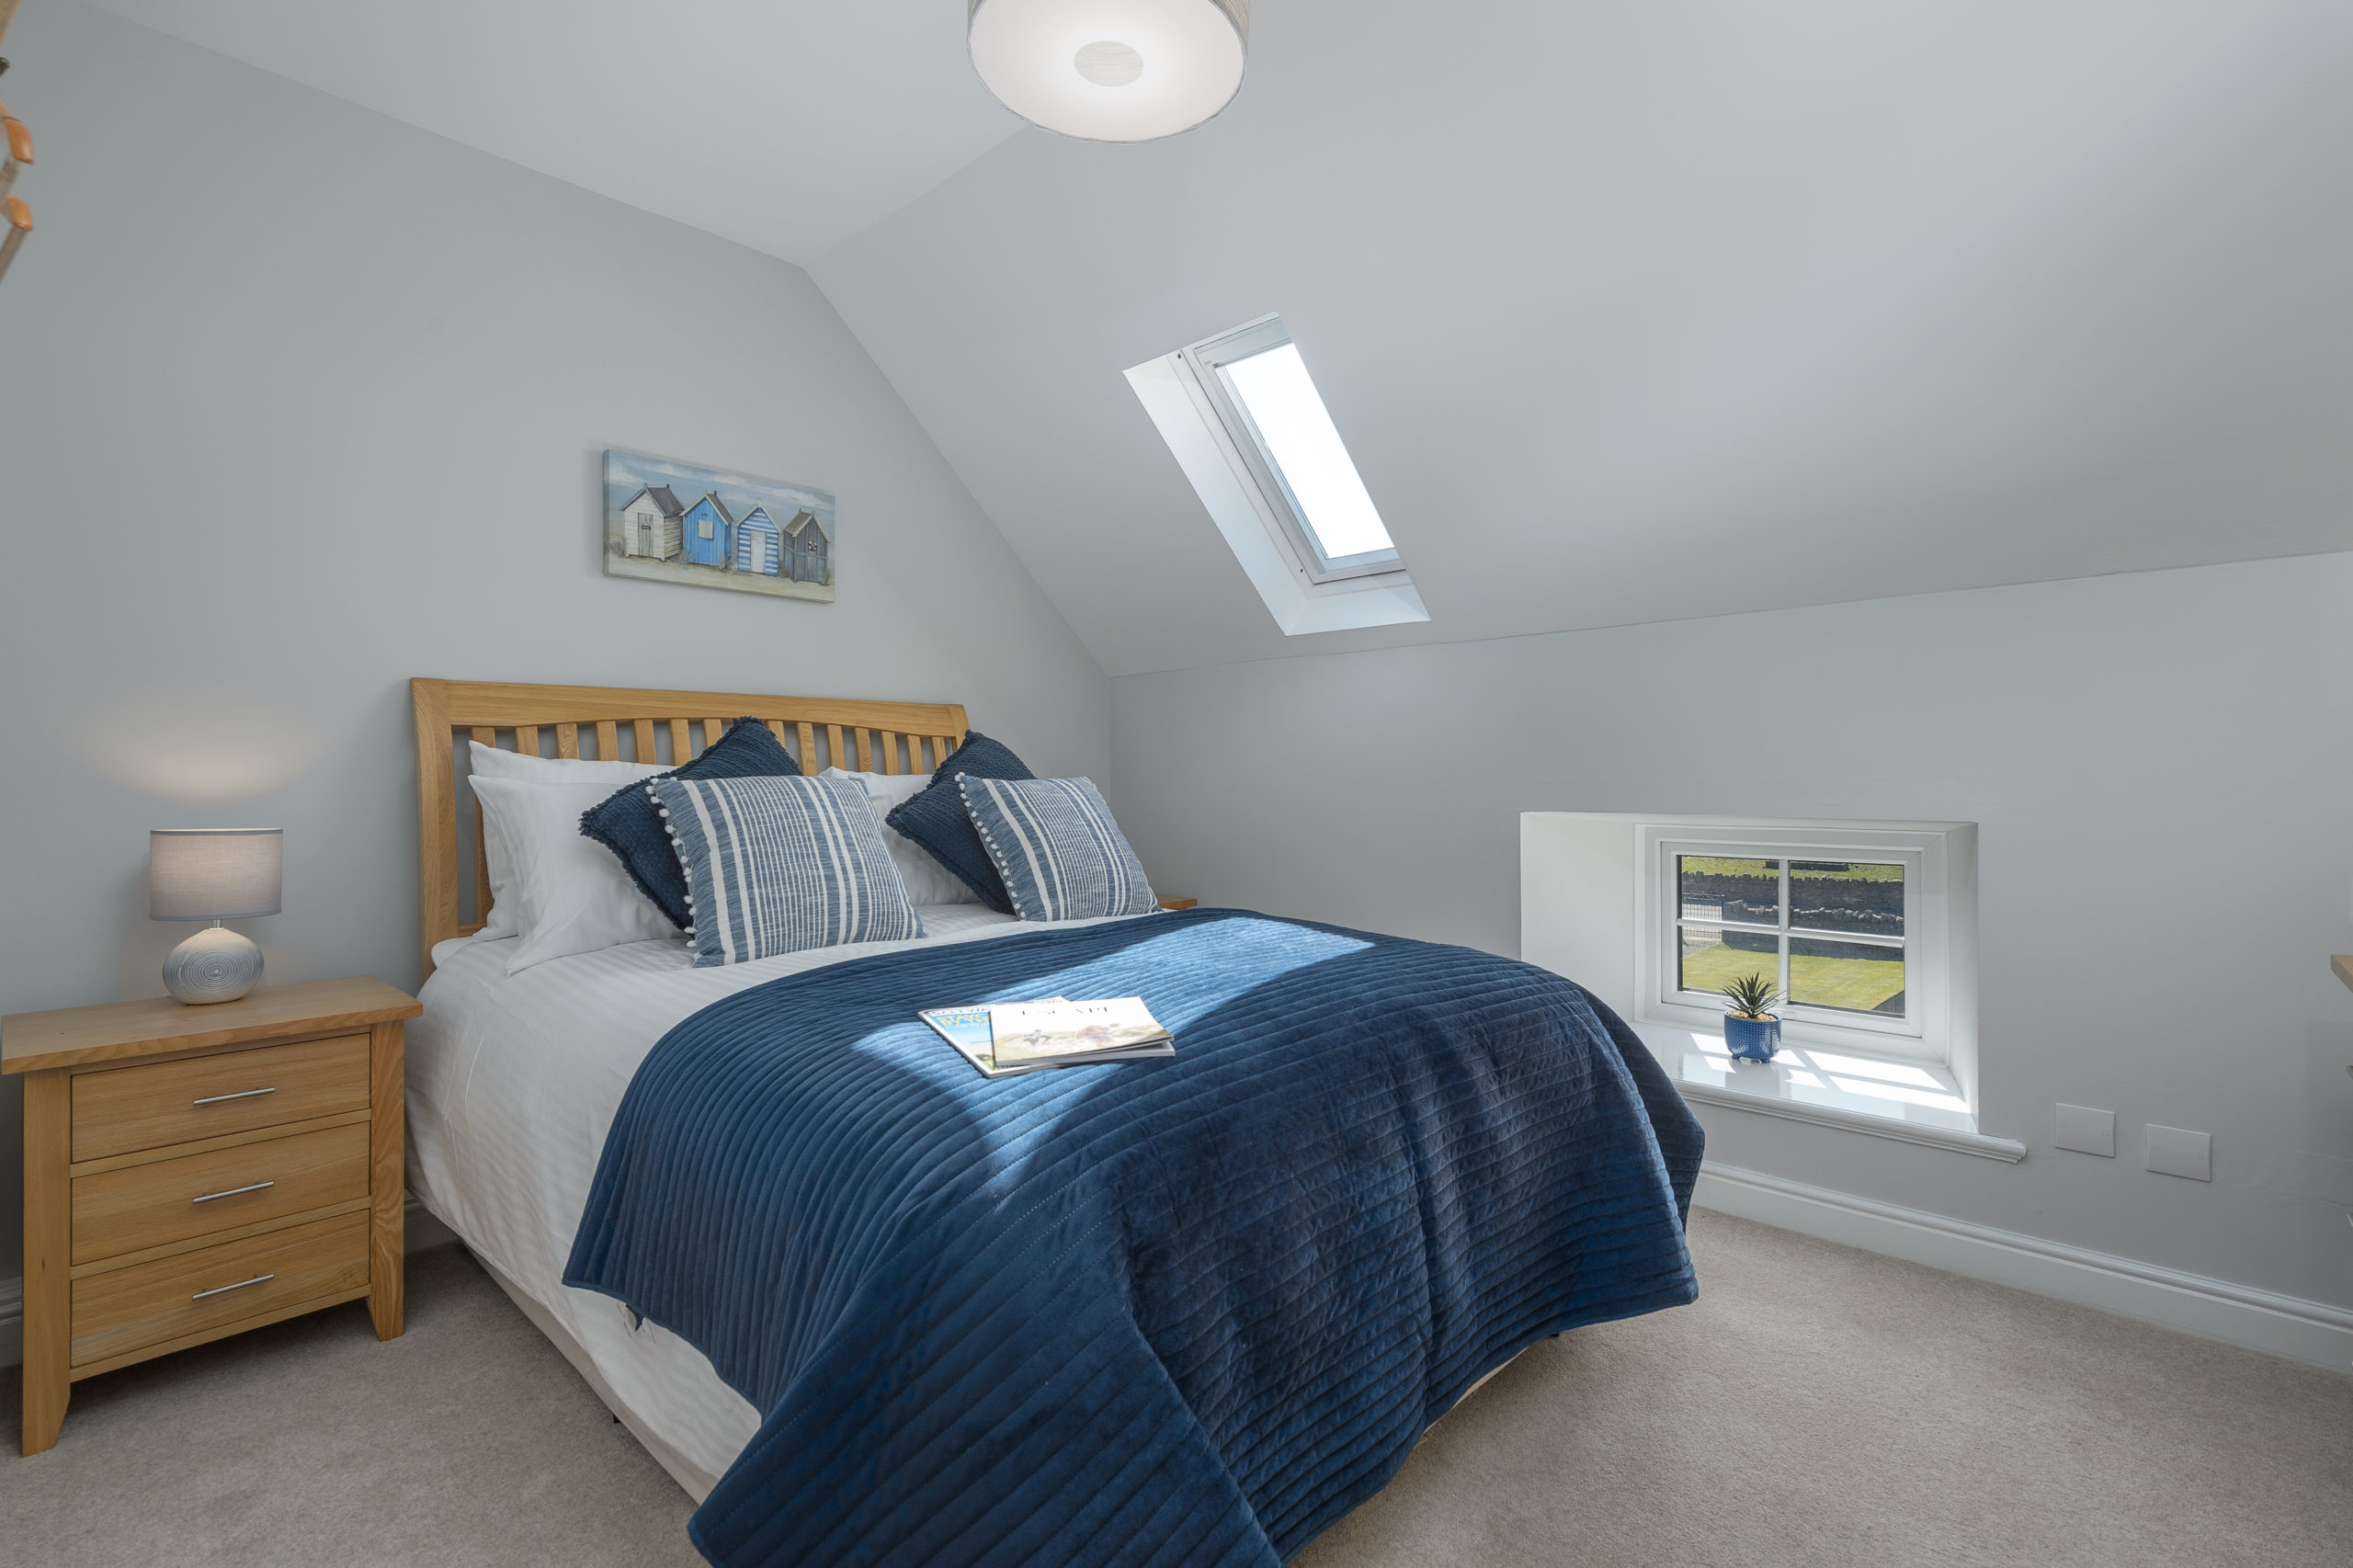 bedroom at the oystercatcher beadnell northumberland seaside harbour beach coastal holiday cottage luxury